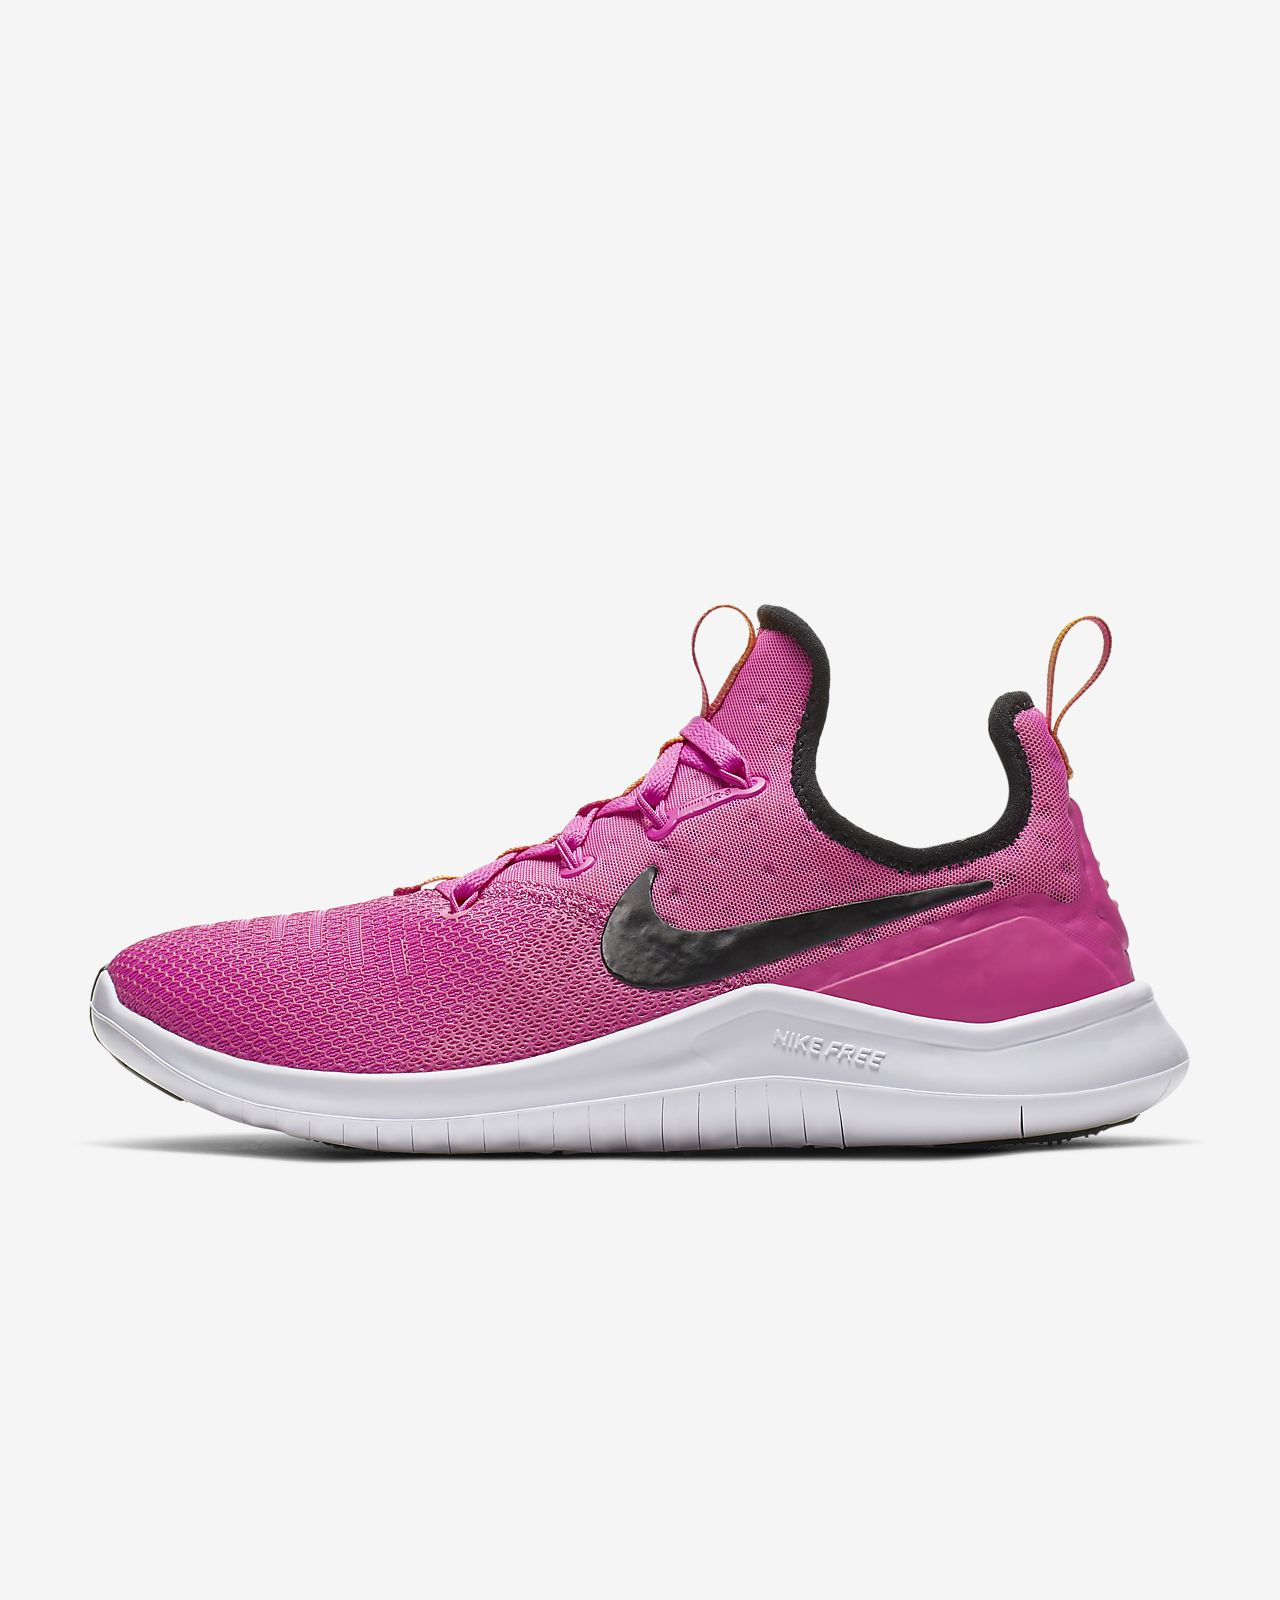 0ed6282048be Nike Free TR8 Women s Gym HIIT Cross Training Shoe. Nike.com